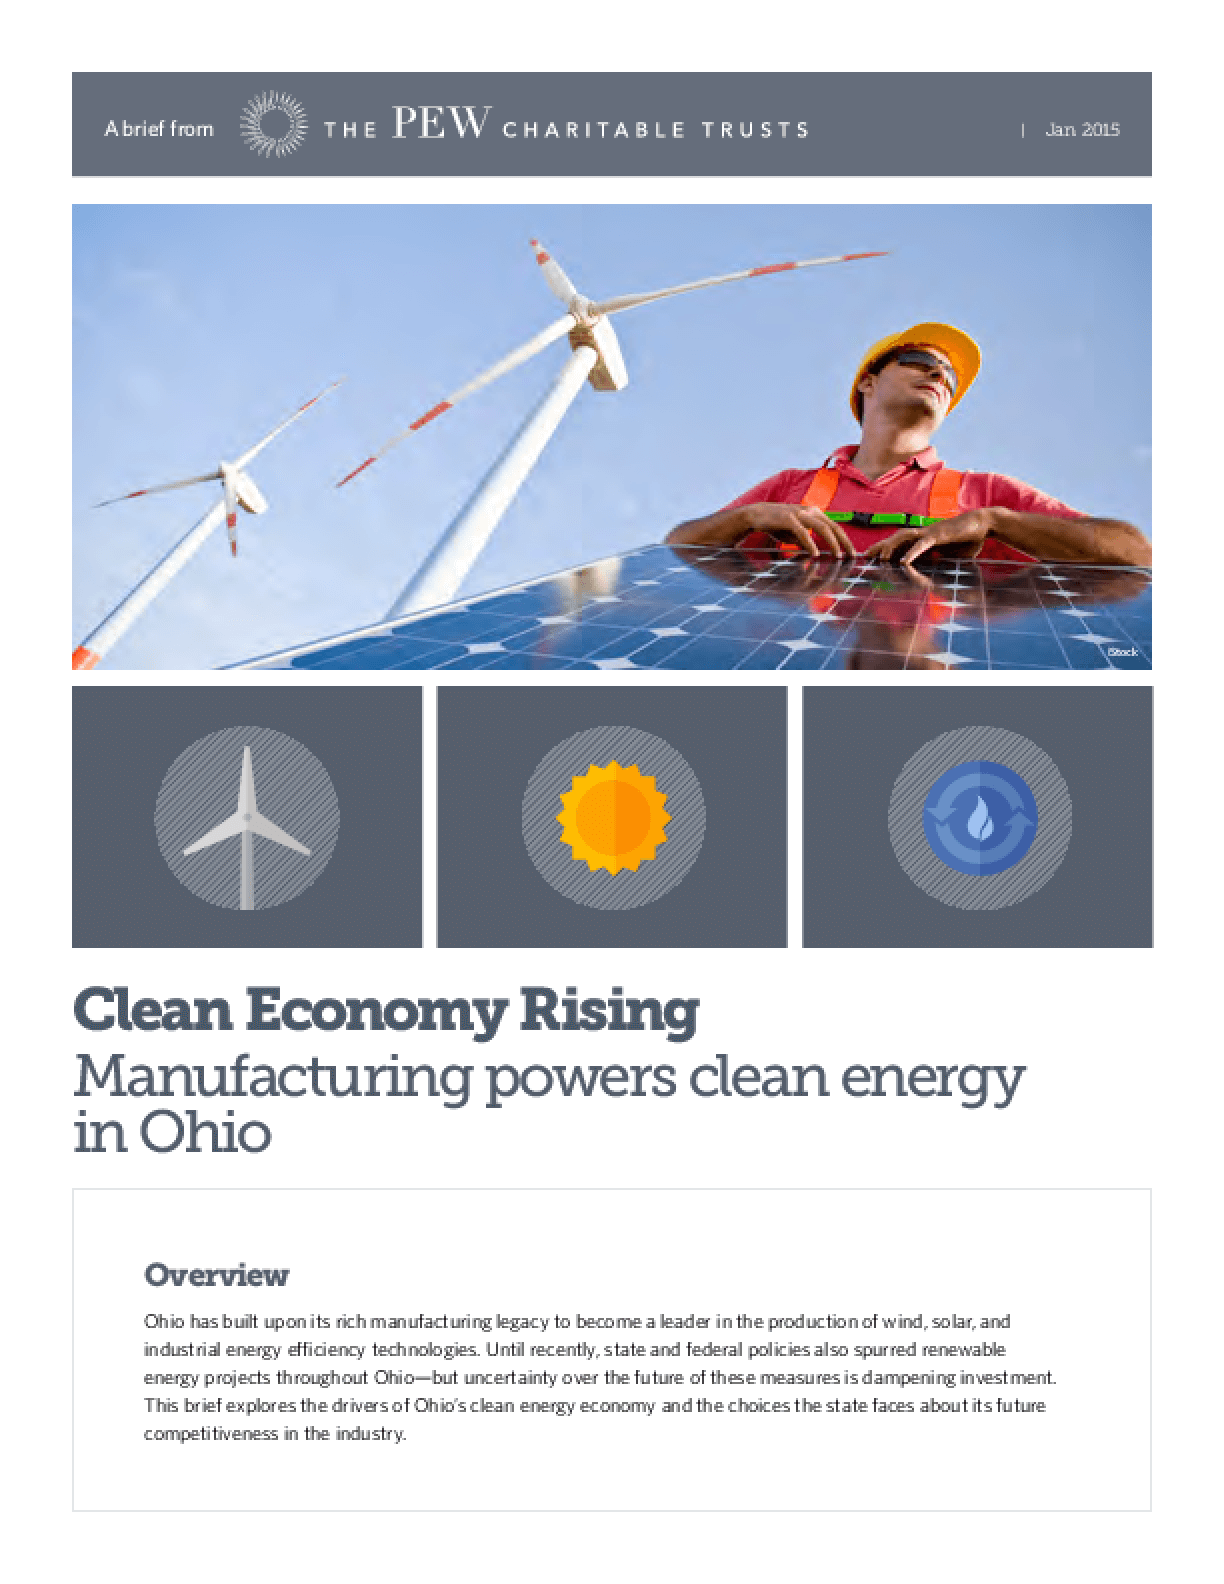 Clean Economy Rising: Manufacturing Powers Clean Energy in Ohio